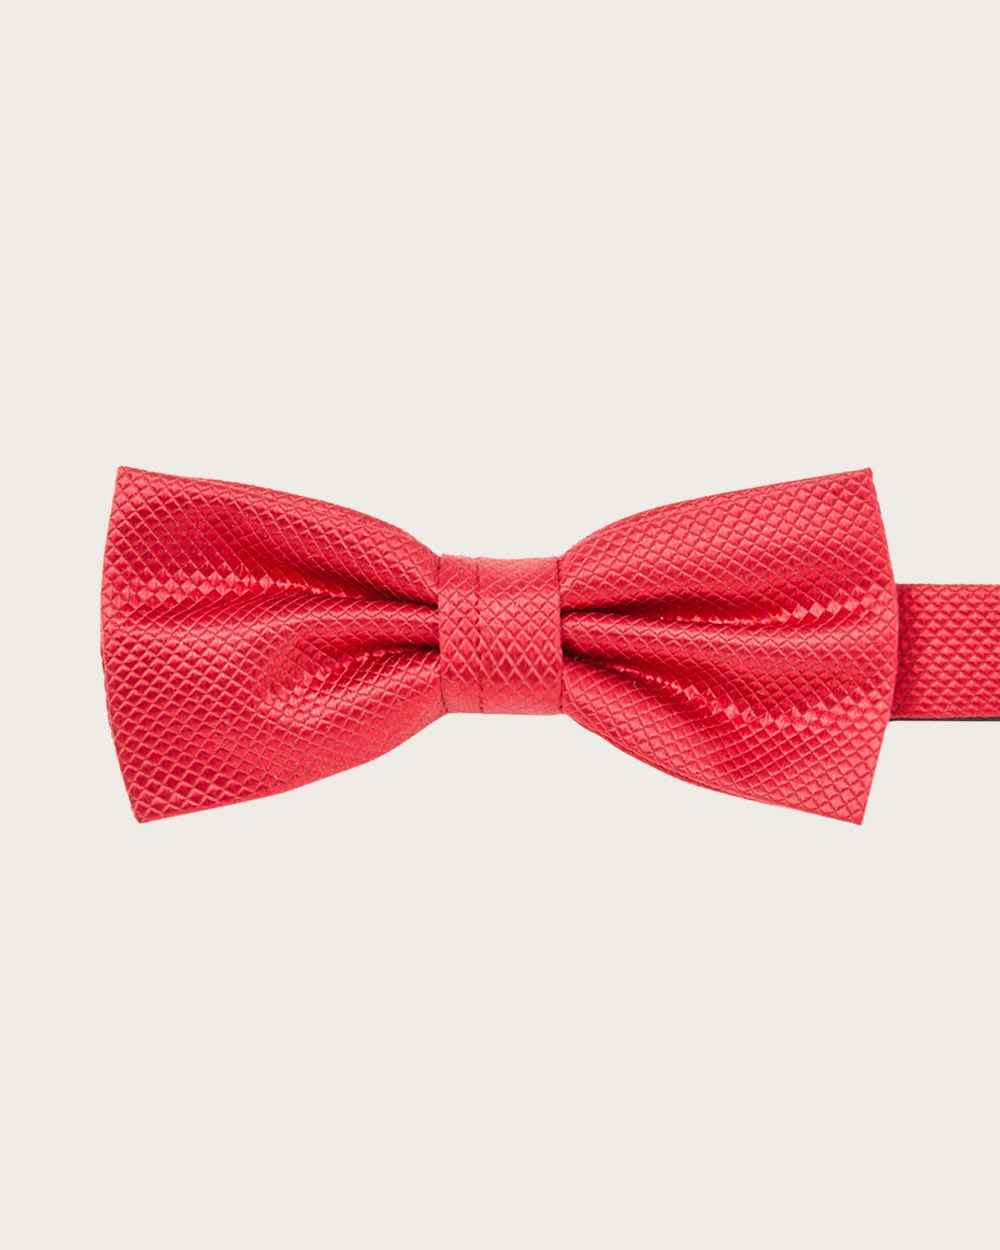 Classic solid bright red bow tie